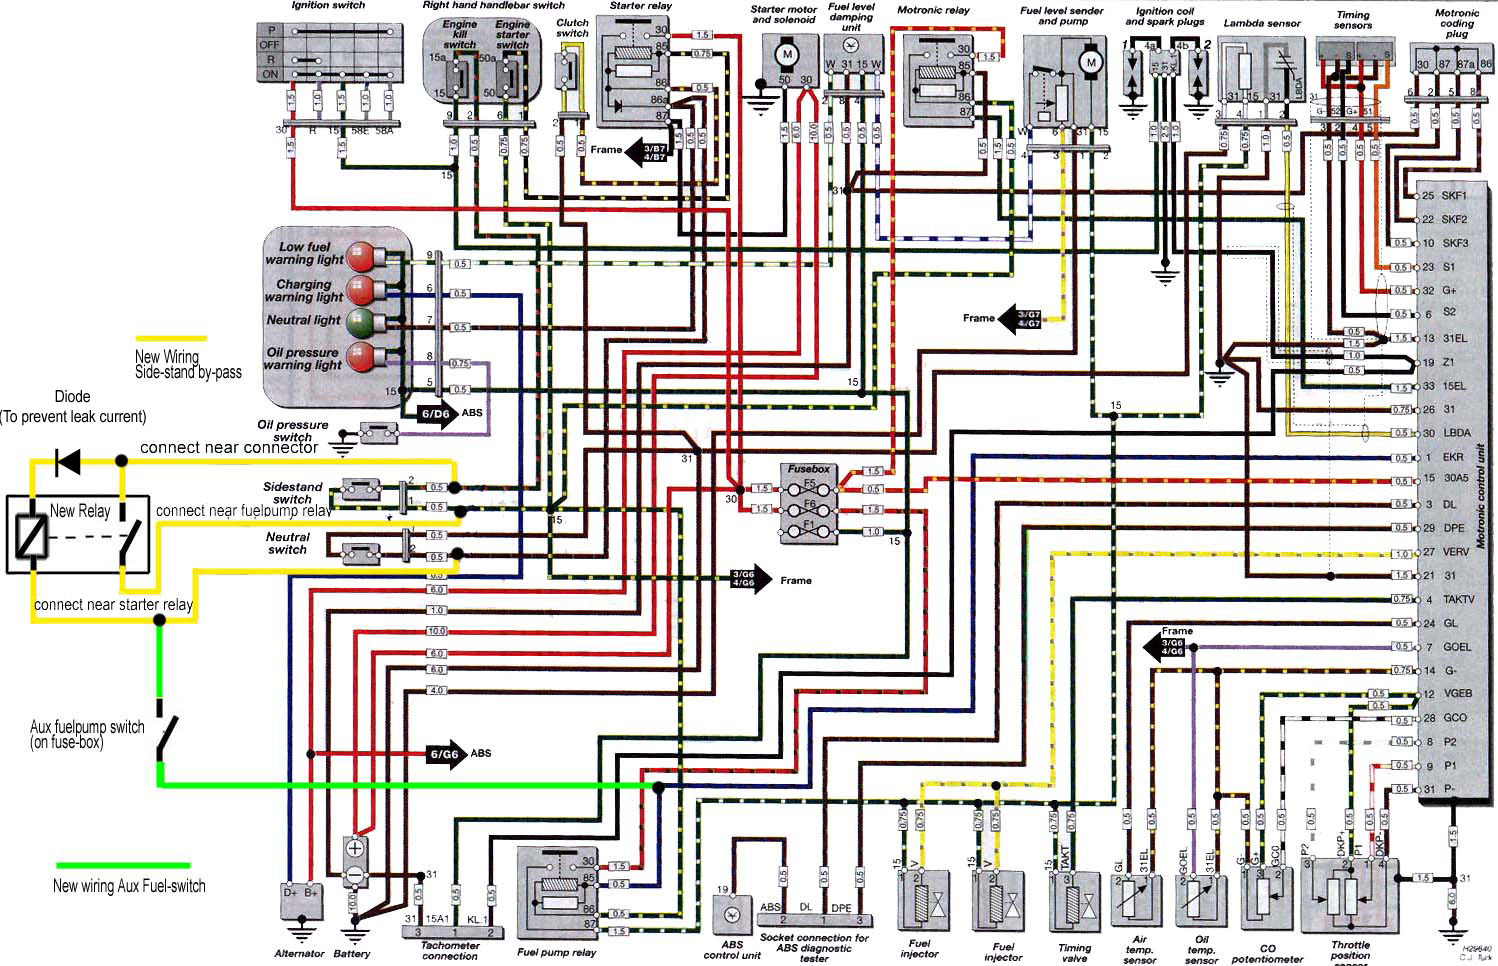 15908153 O bmw r1150r wiring diagram 2002 bmw r1150r abs \u2022 wiring diagrams r1100rt wiring diagram at crackthecode.co